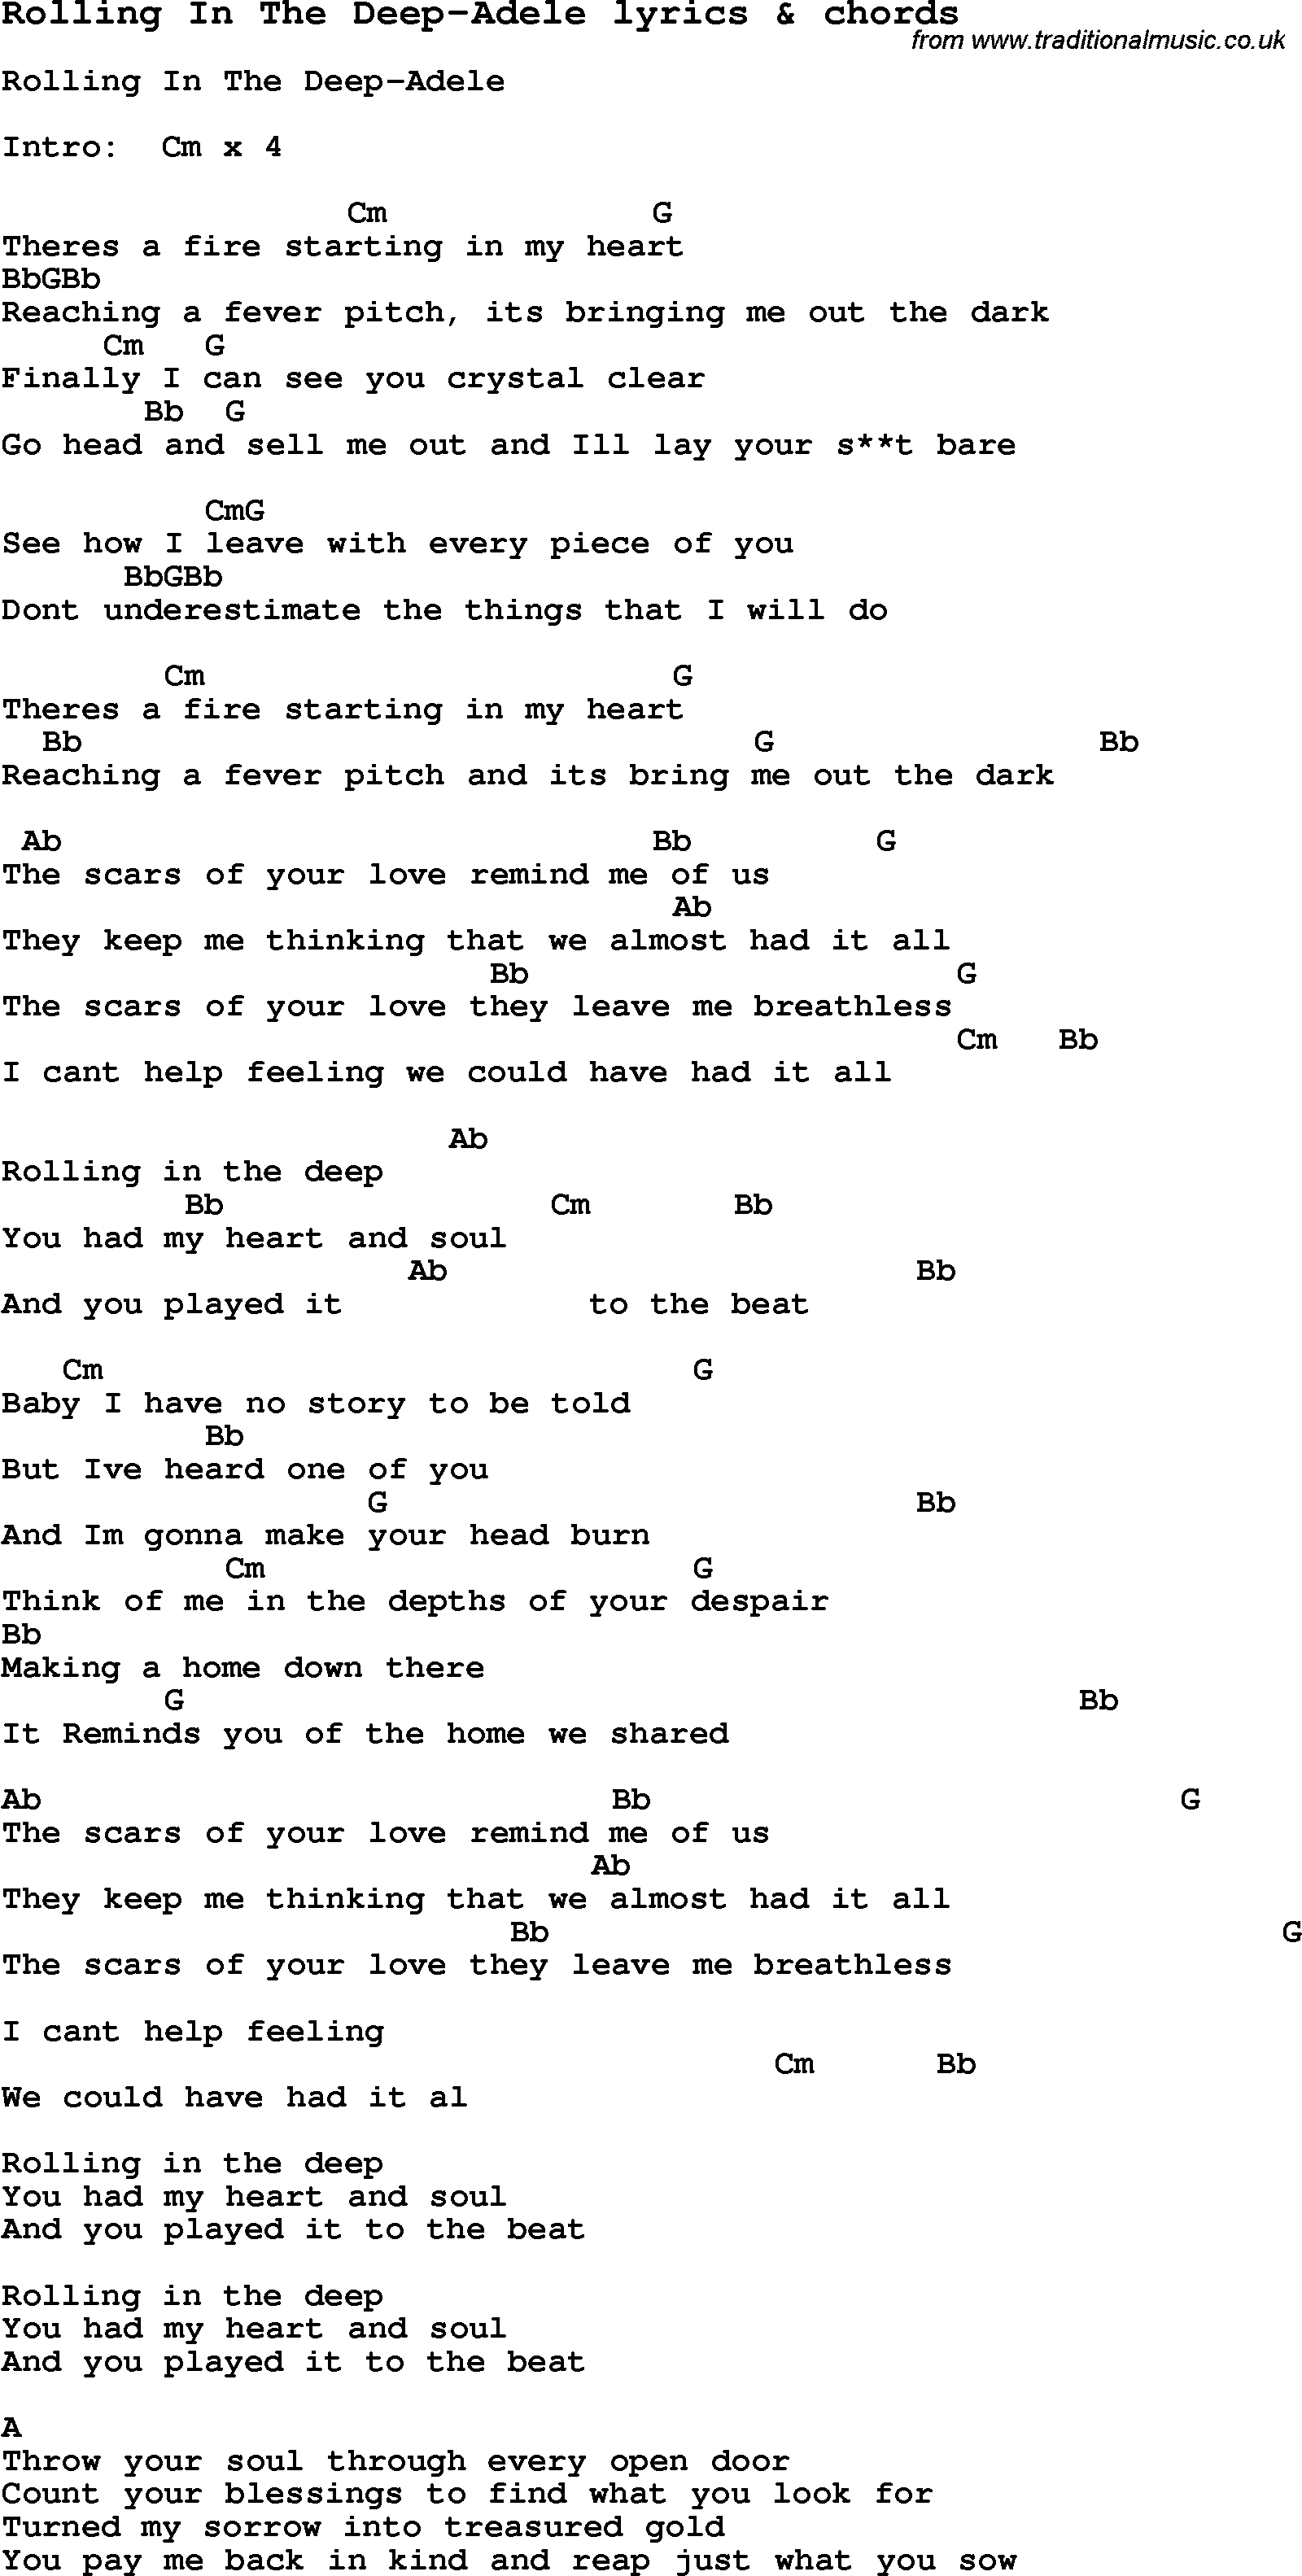 Love song lyrics forrolling in the deep adele with chords love song lyrics for rolling in the deep adele with chords for ukulele hexwebz Choice Image